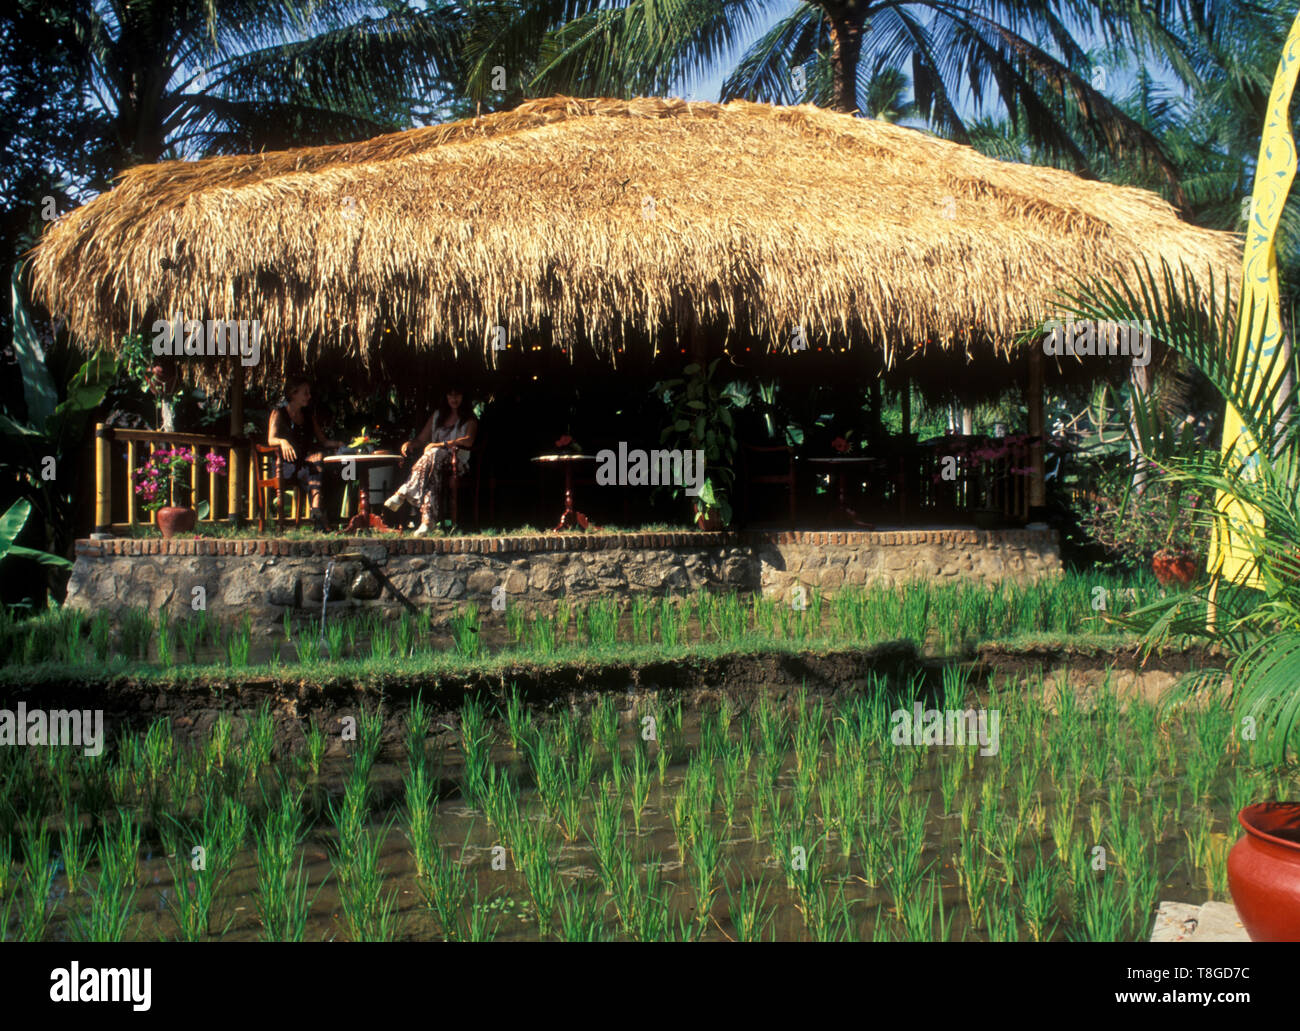 Vietnam: Riceplantation in the Mekong Delta - Stock Image